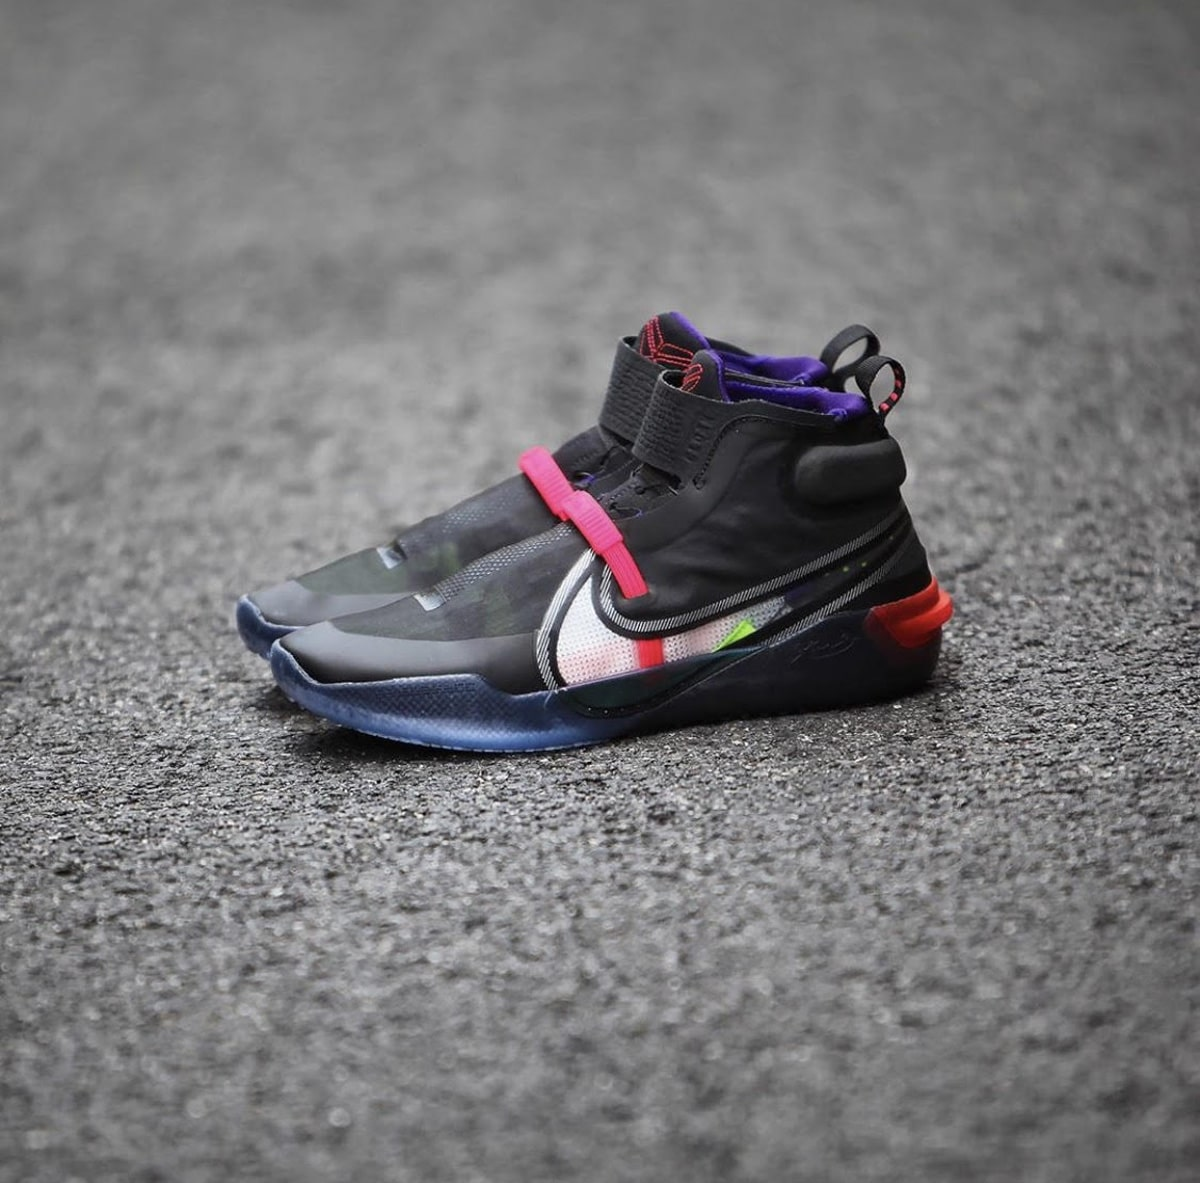 info for 28306 623b9 Up Close and Personal with the Nike Kobe AD NXT FF - WearTesters